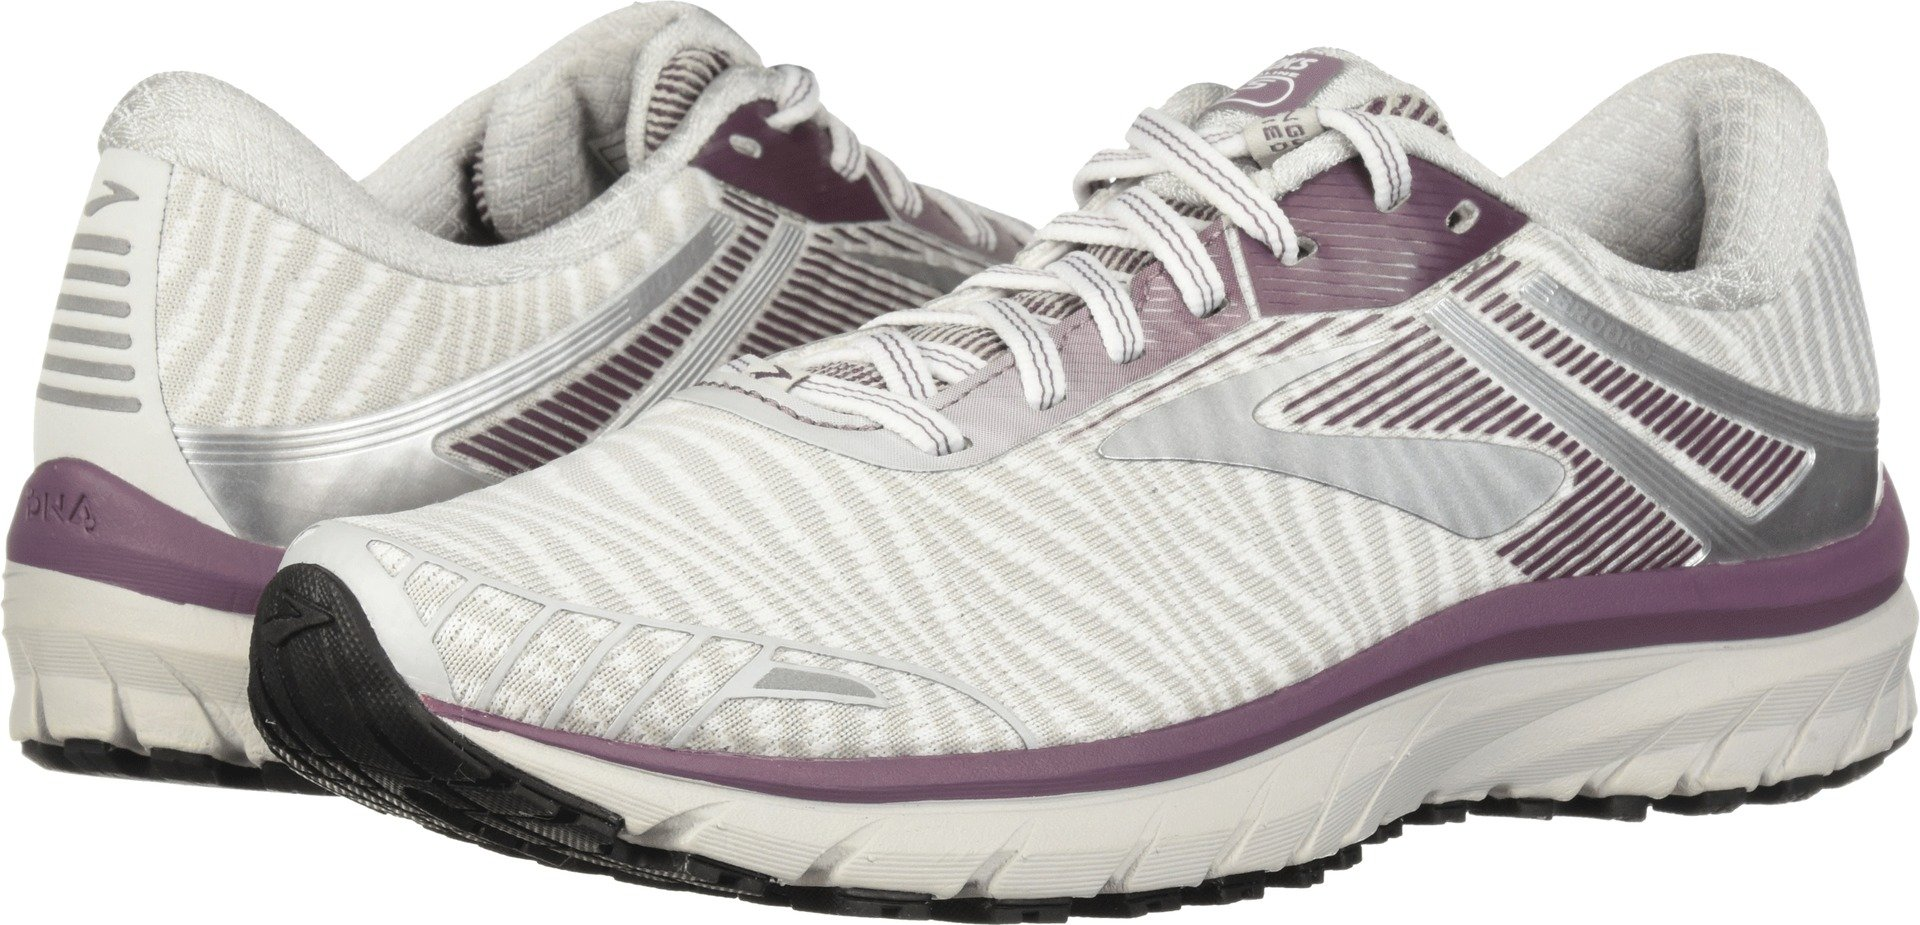 Brooks Women's Adrenaline GTS 18 White/Purple/Grey 9 B US B (M)